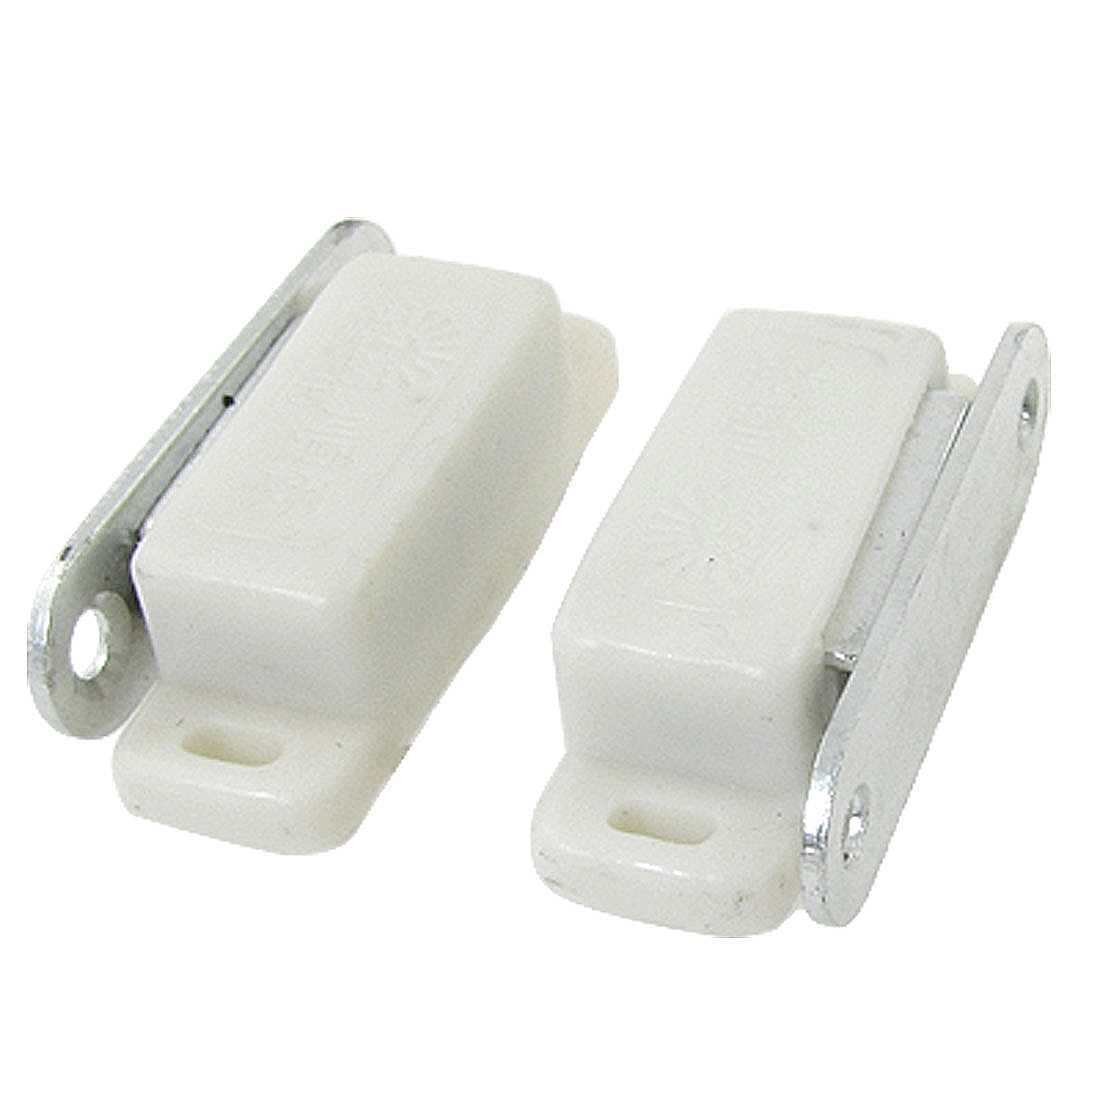 2 Pcs White Plastic Shell Metal Plate Cabinet Door Magnetic Catch Set 1.8""